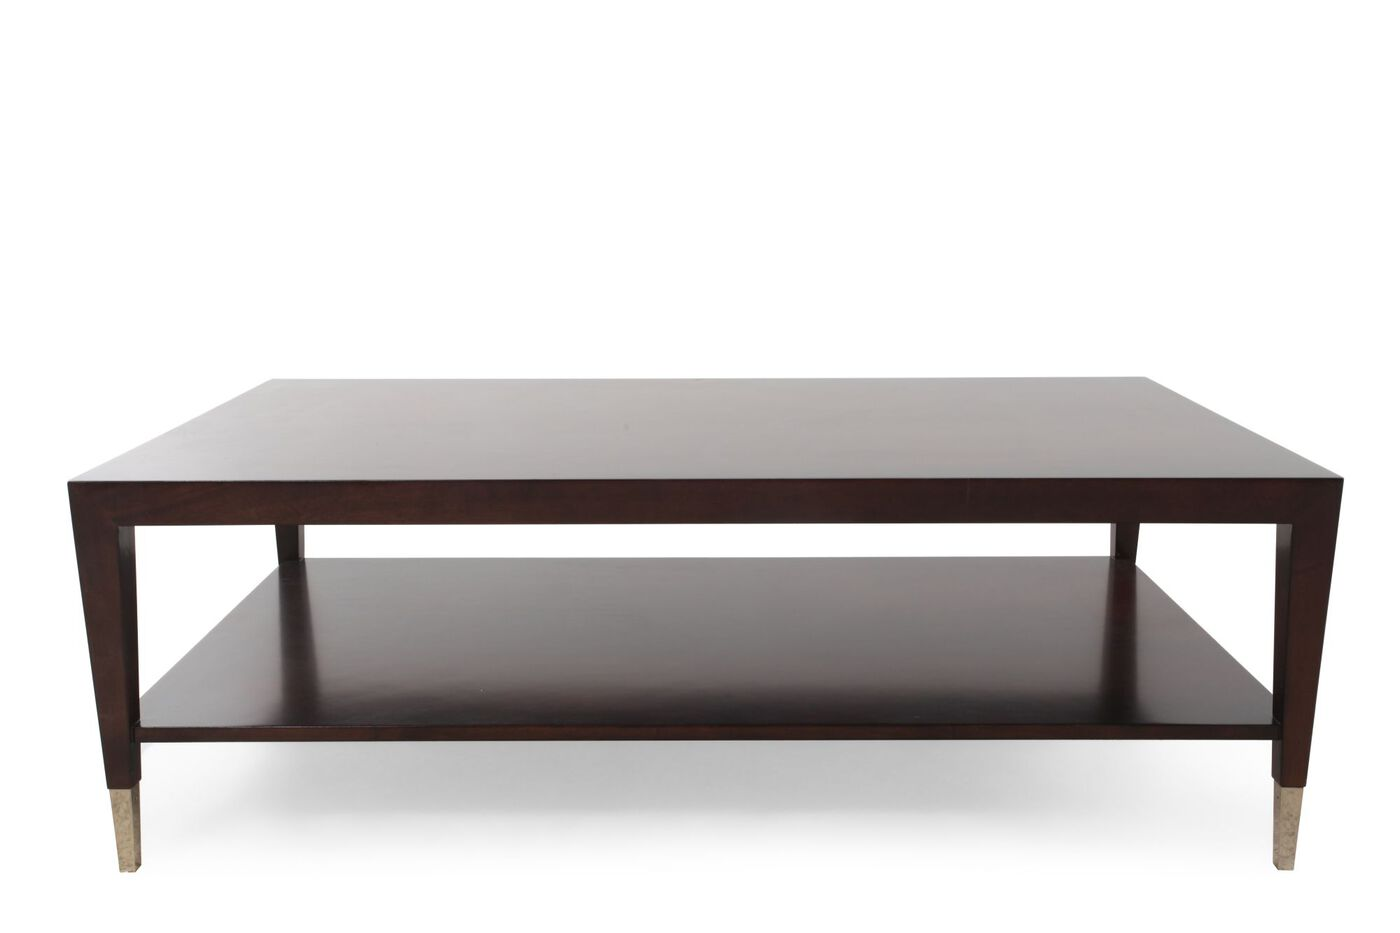 Mathis Brothers Coffee Tables Images Teak Table